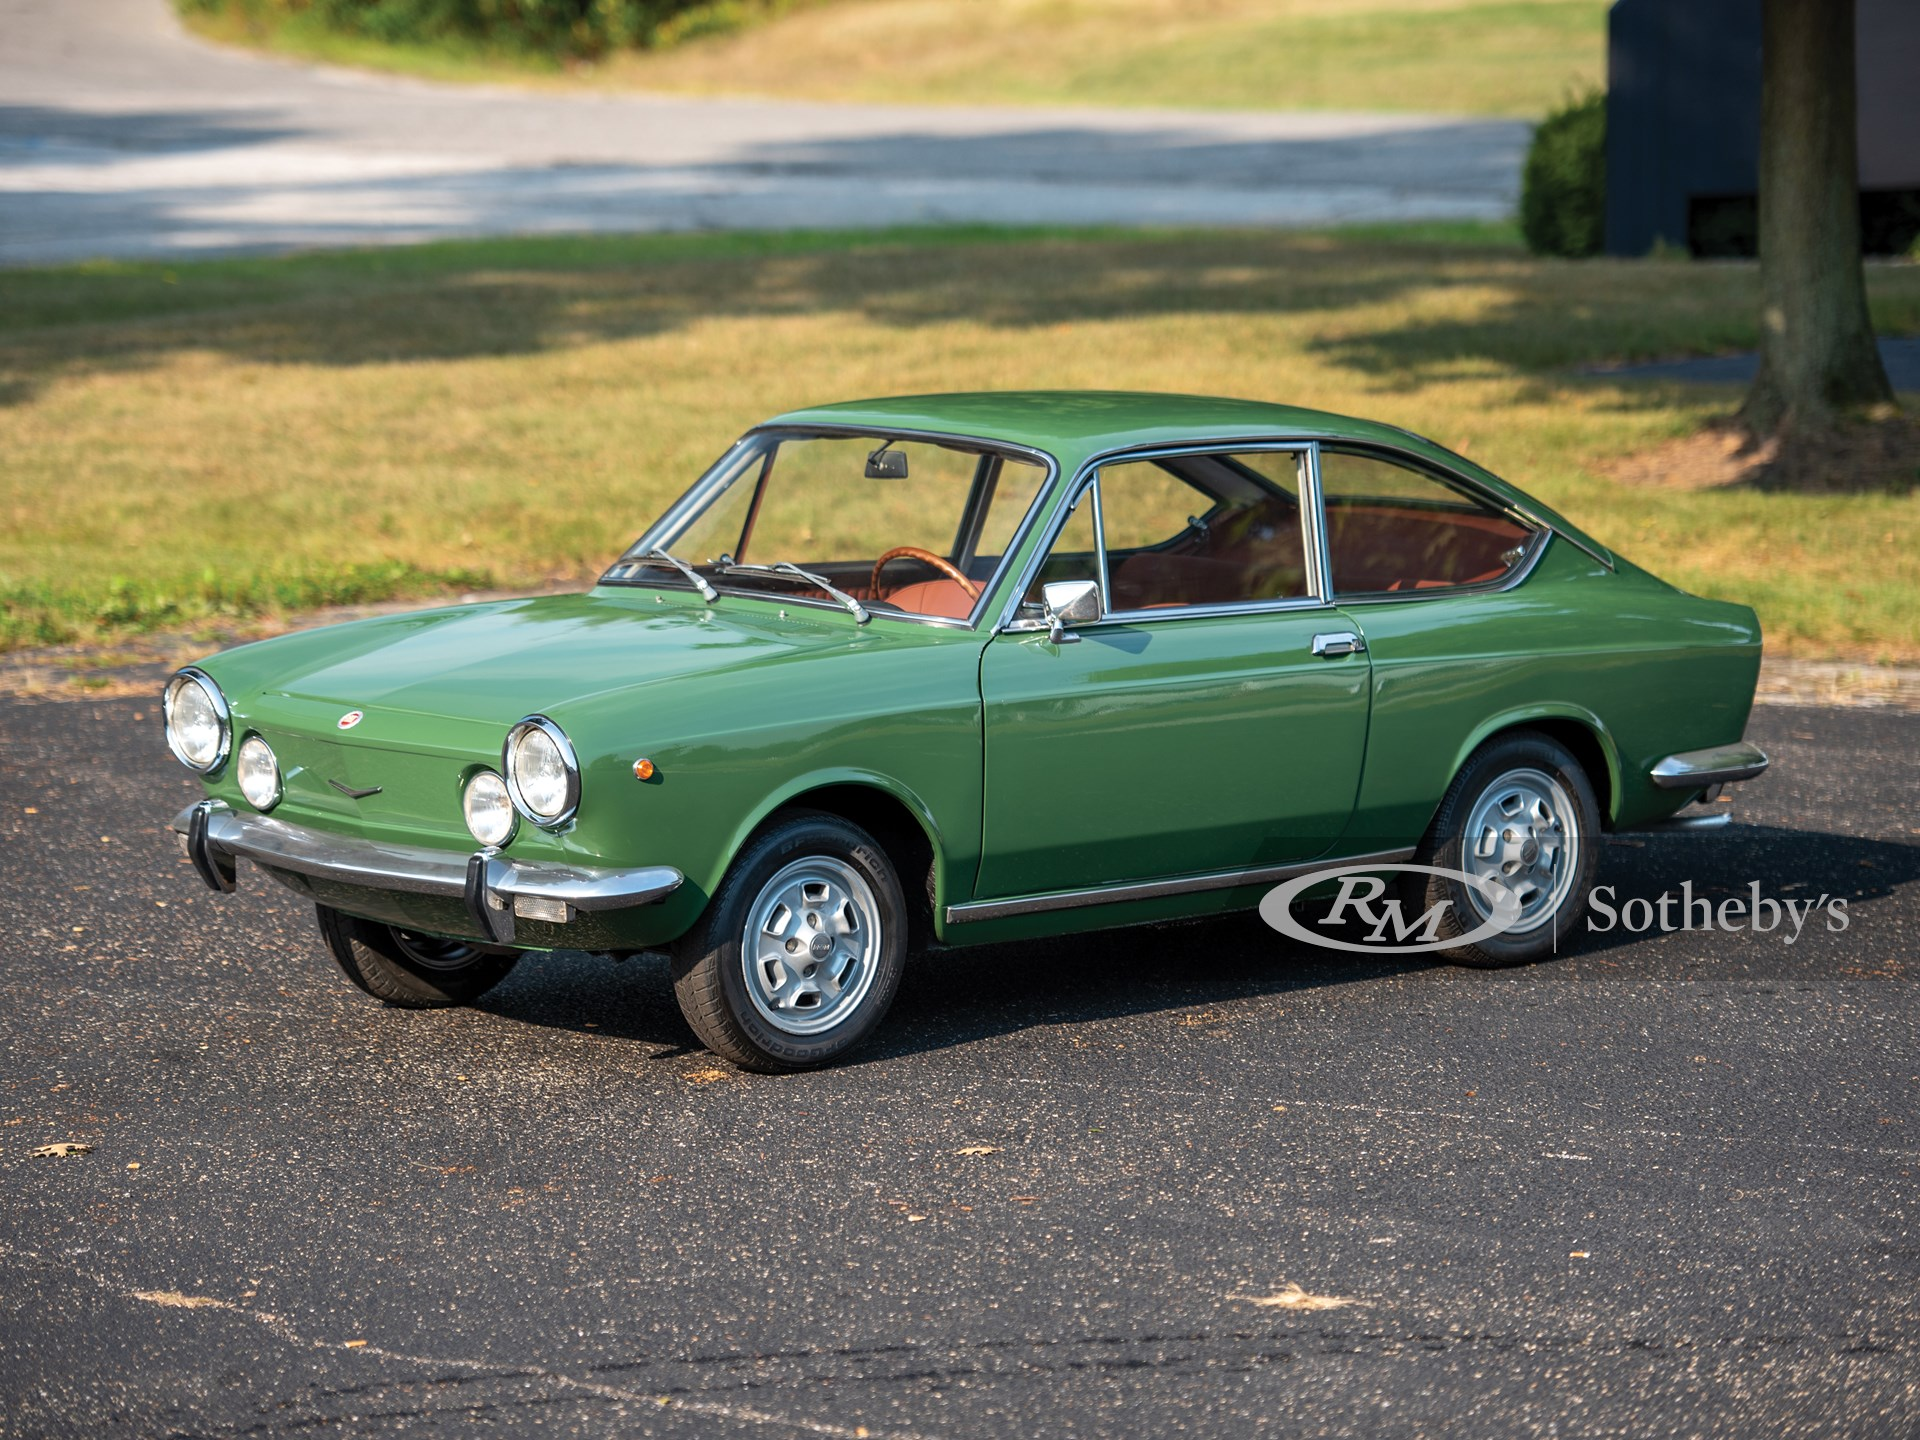 1970 Fiat 850 Sport Coupe The Elkhart Collection Rm Sotheby S